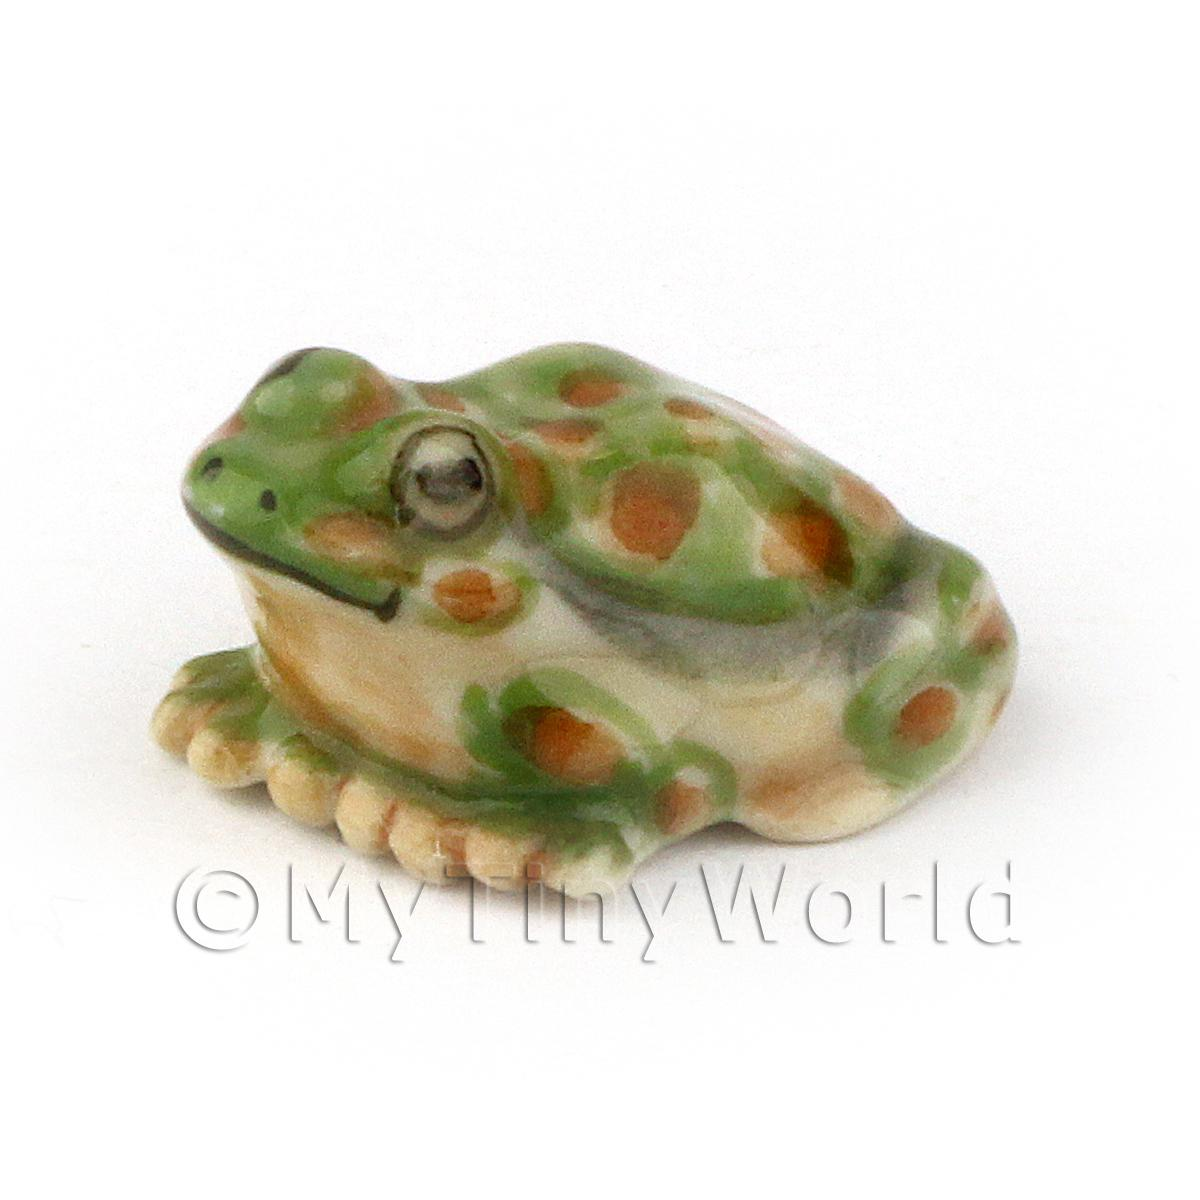 Dolls House Miniature Ceramic Dolls House Miniature Green Spotted Toad